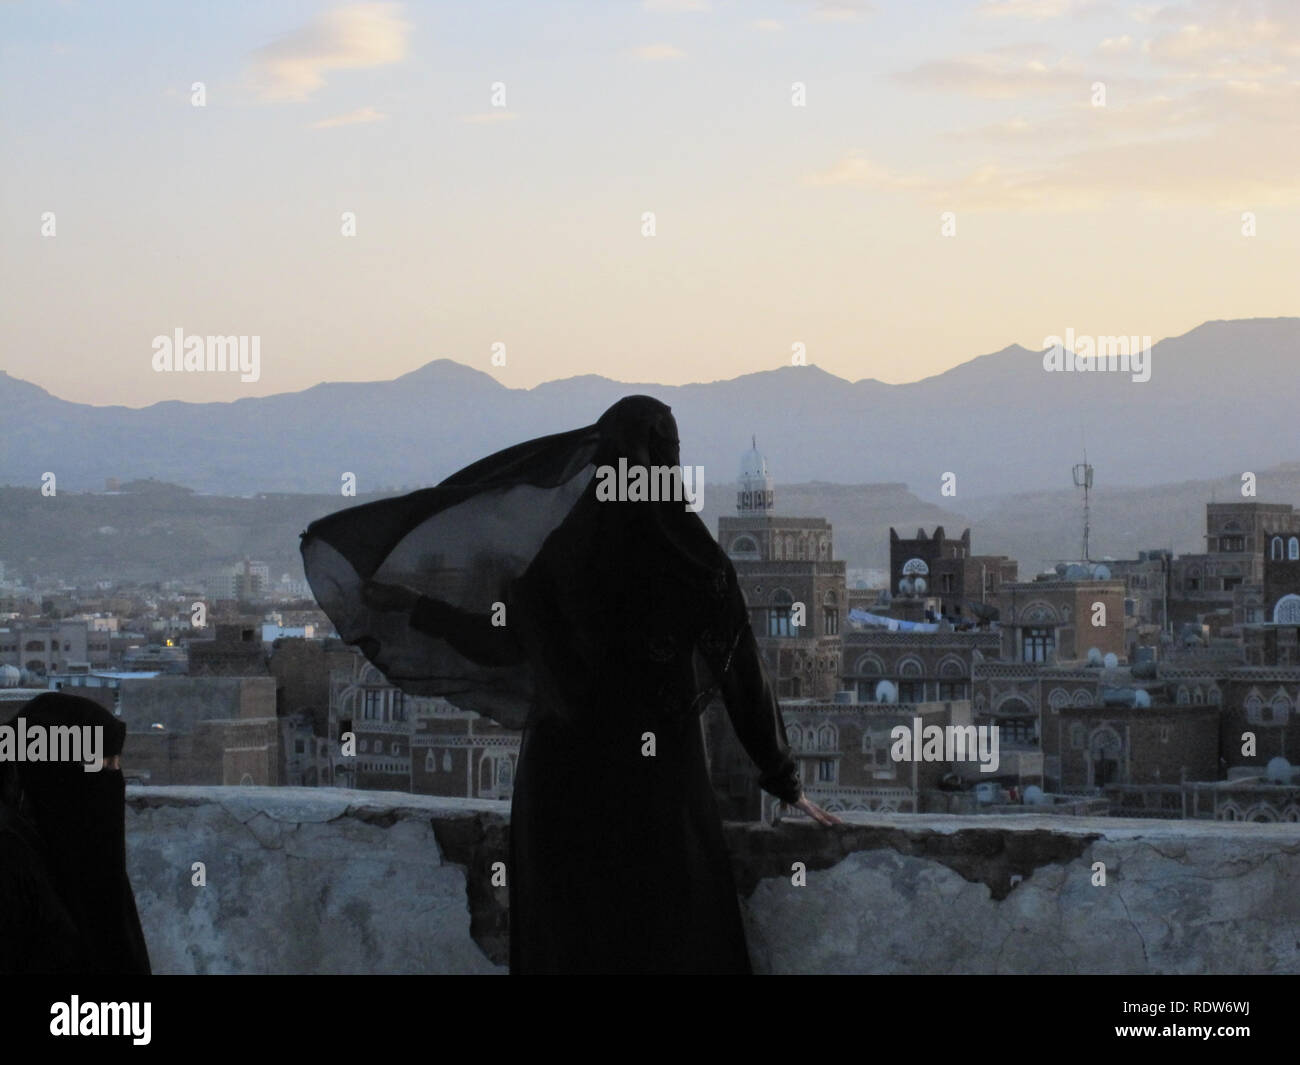 Two Muslim women standing on a roof gaze out towards the mountains over the city of Sana'a in Yemen. - Stock Image